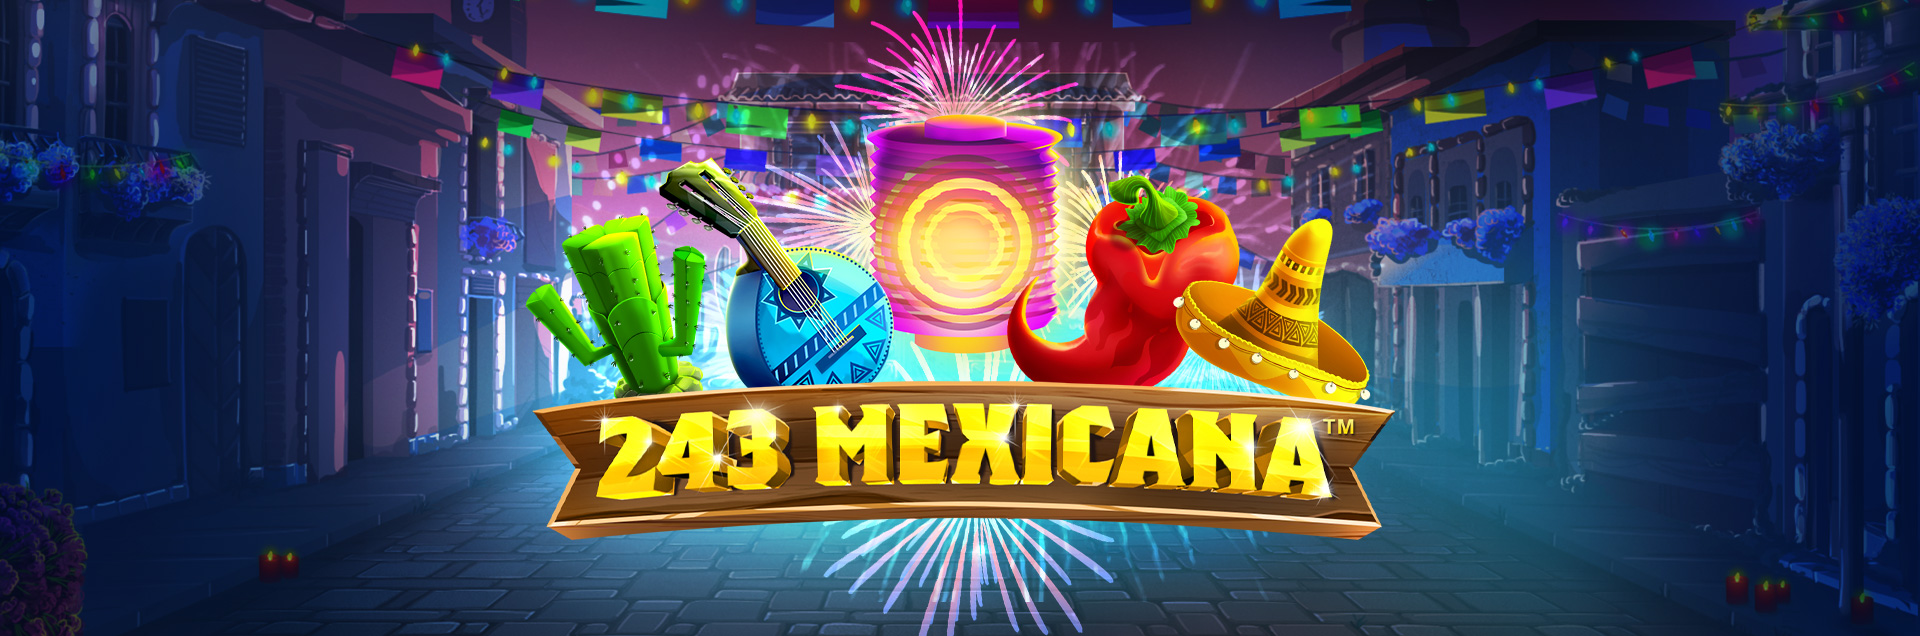 243 Mexicana header games